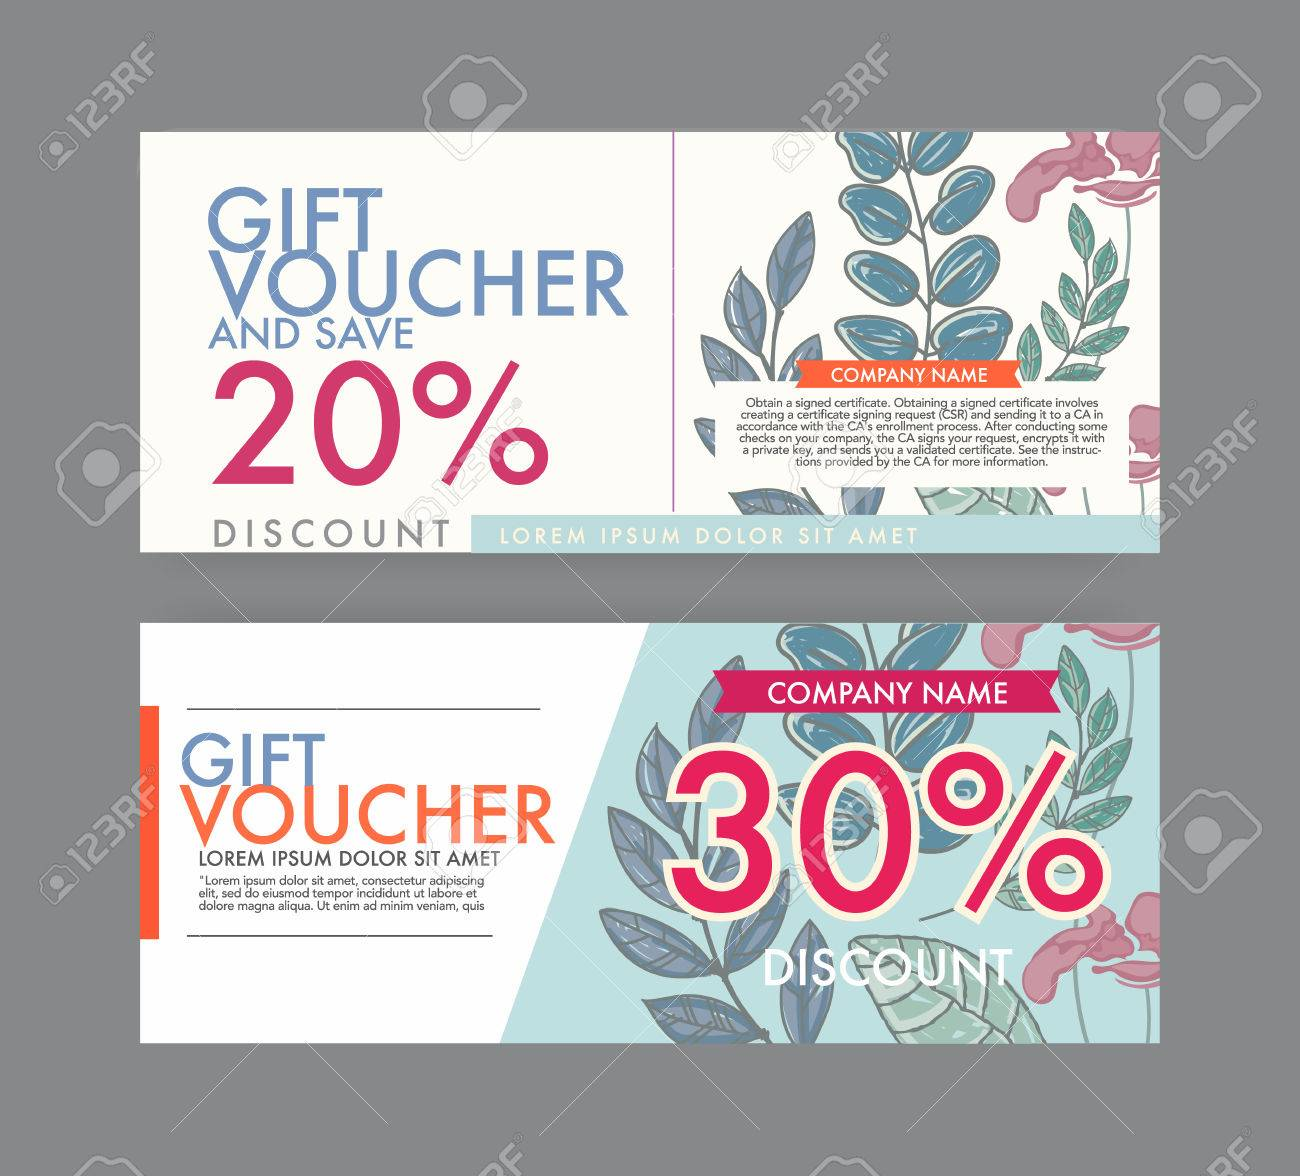 Gift Voucher Template With Vintage Style Royalty Free Cliparts